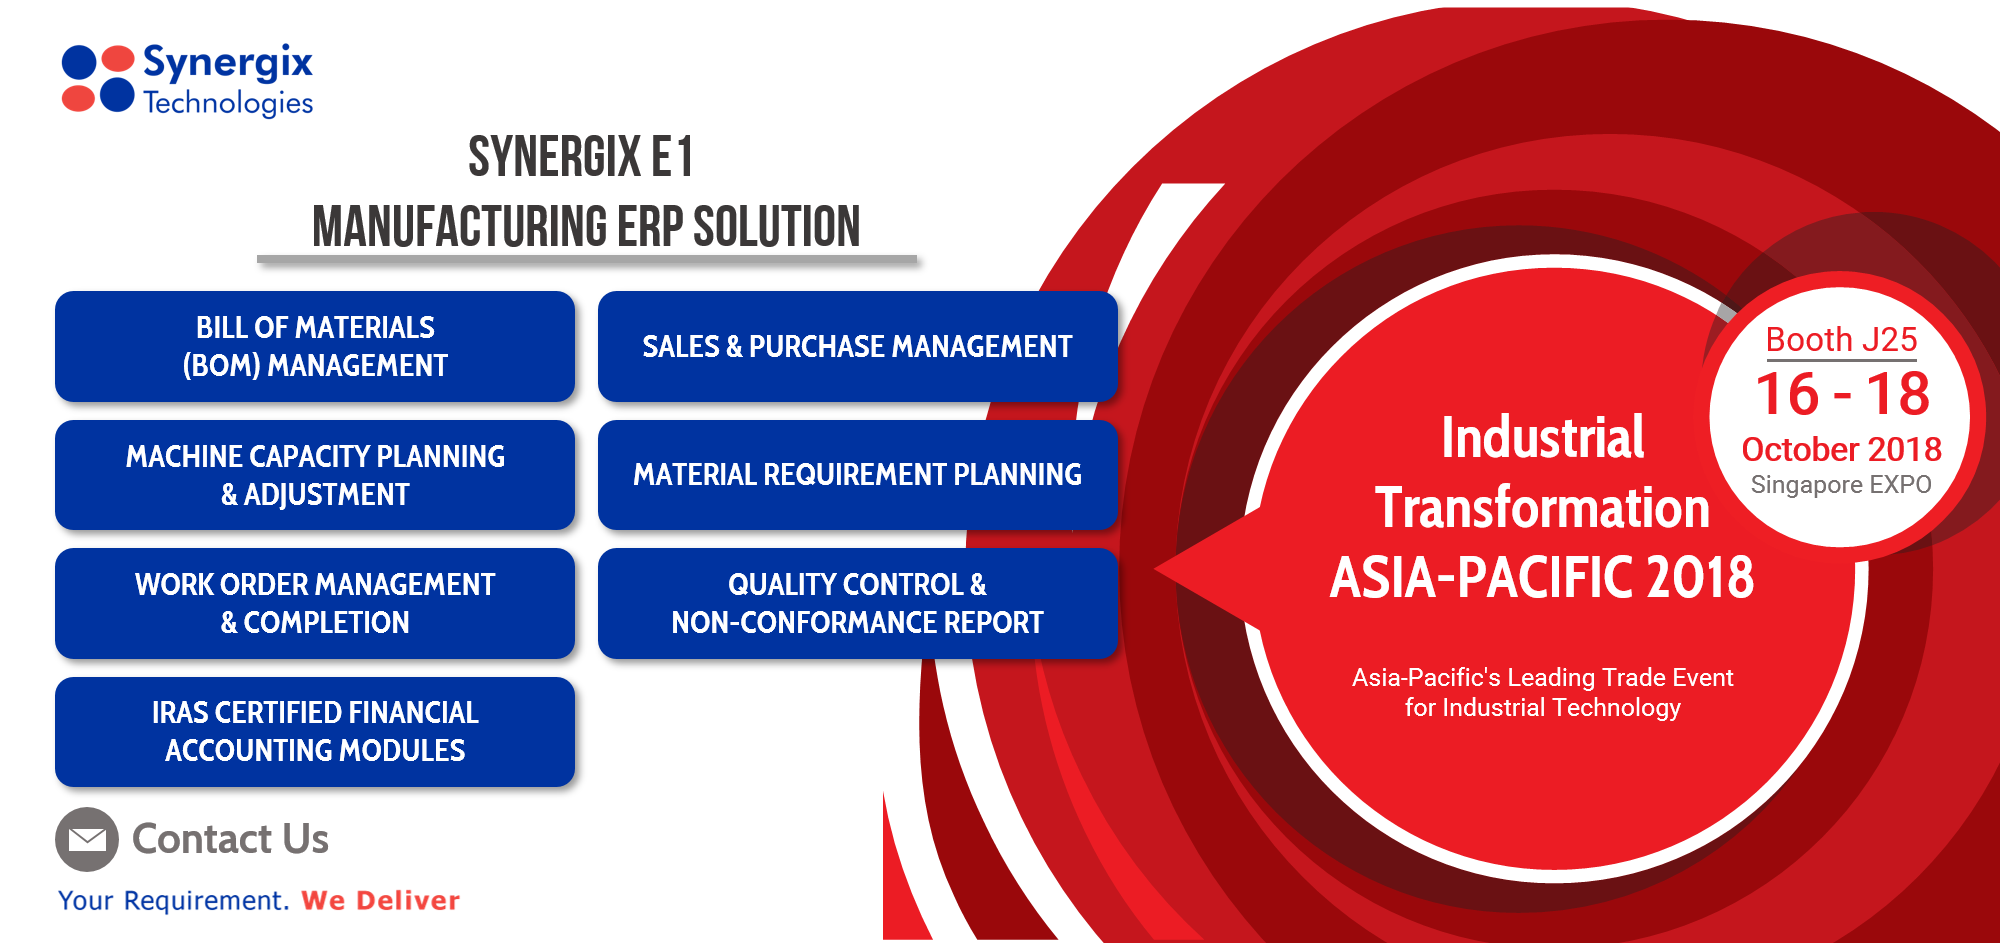 industrialtransBanner3 - Industrial Transformation ASIA PACIFIC 2018 at Singapore Expo